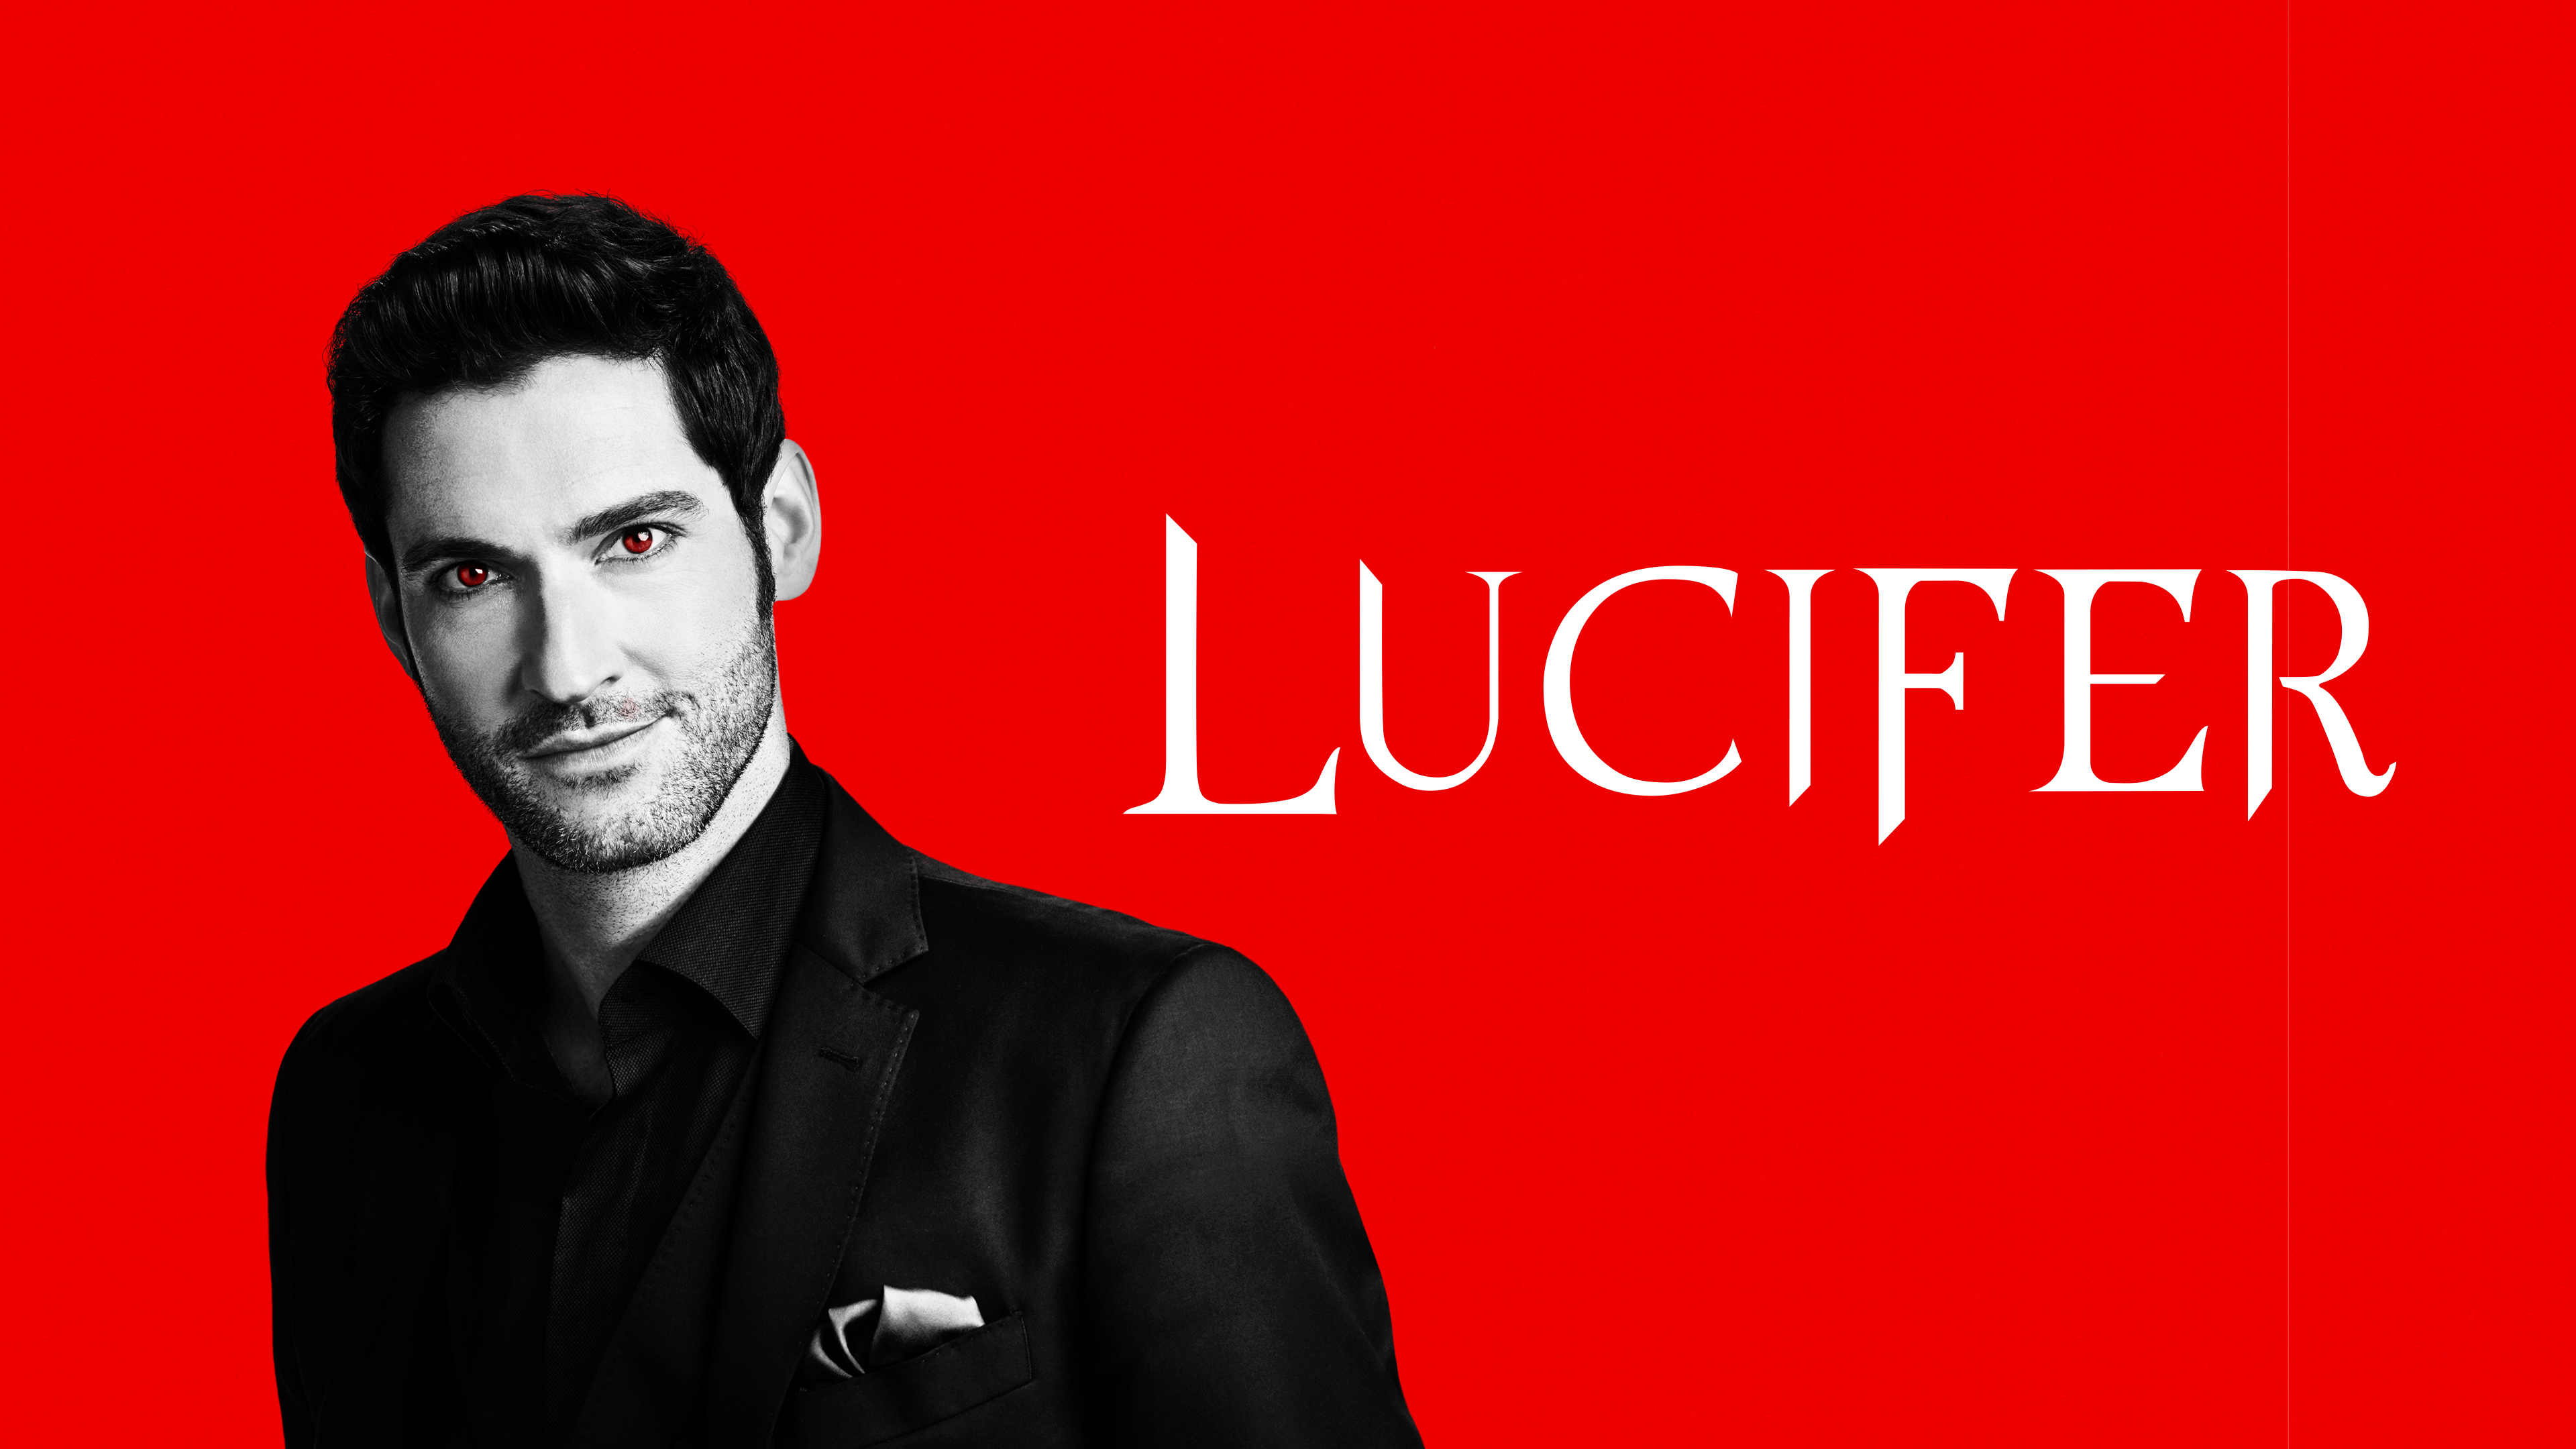 2017 lucifer season 3 4k hd tv shows 4k wallpapers - Tv series wallpaper 4k ...